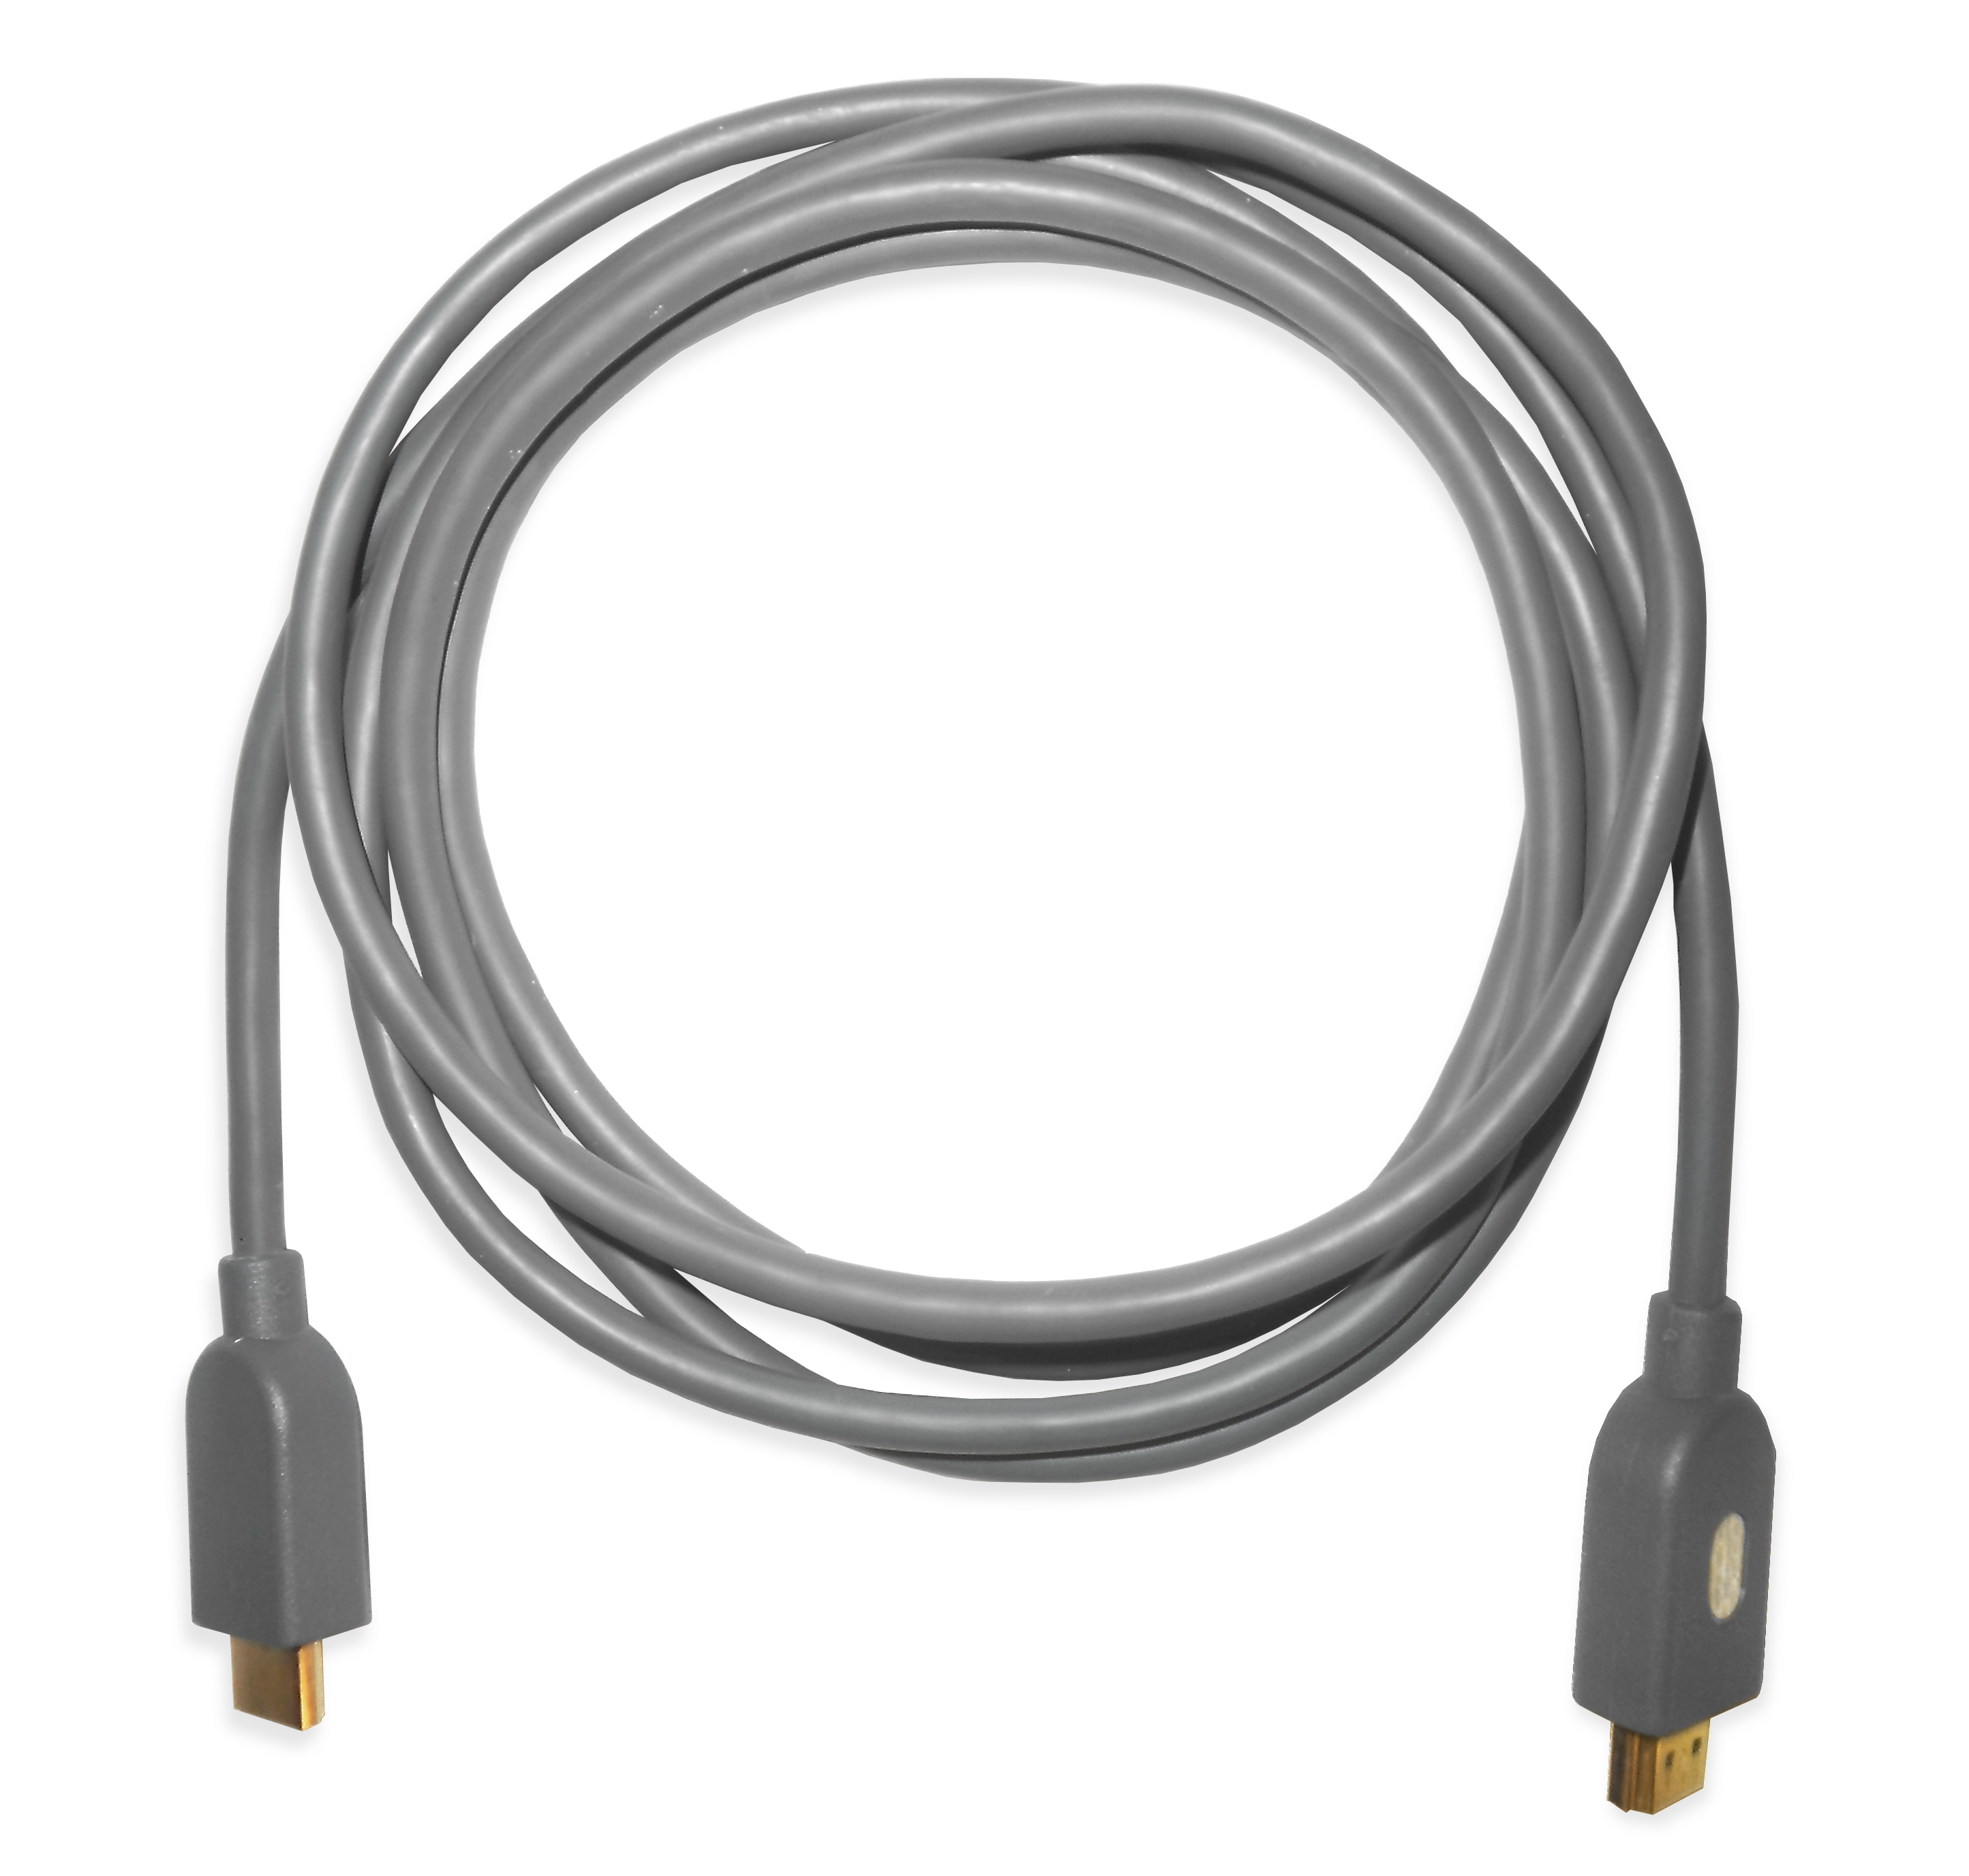 File:Xbox 360 HDMI Cable.png - Wikimedia Commons